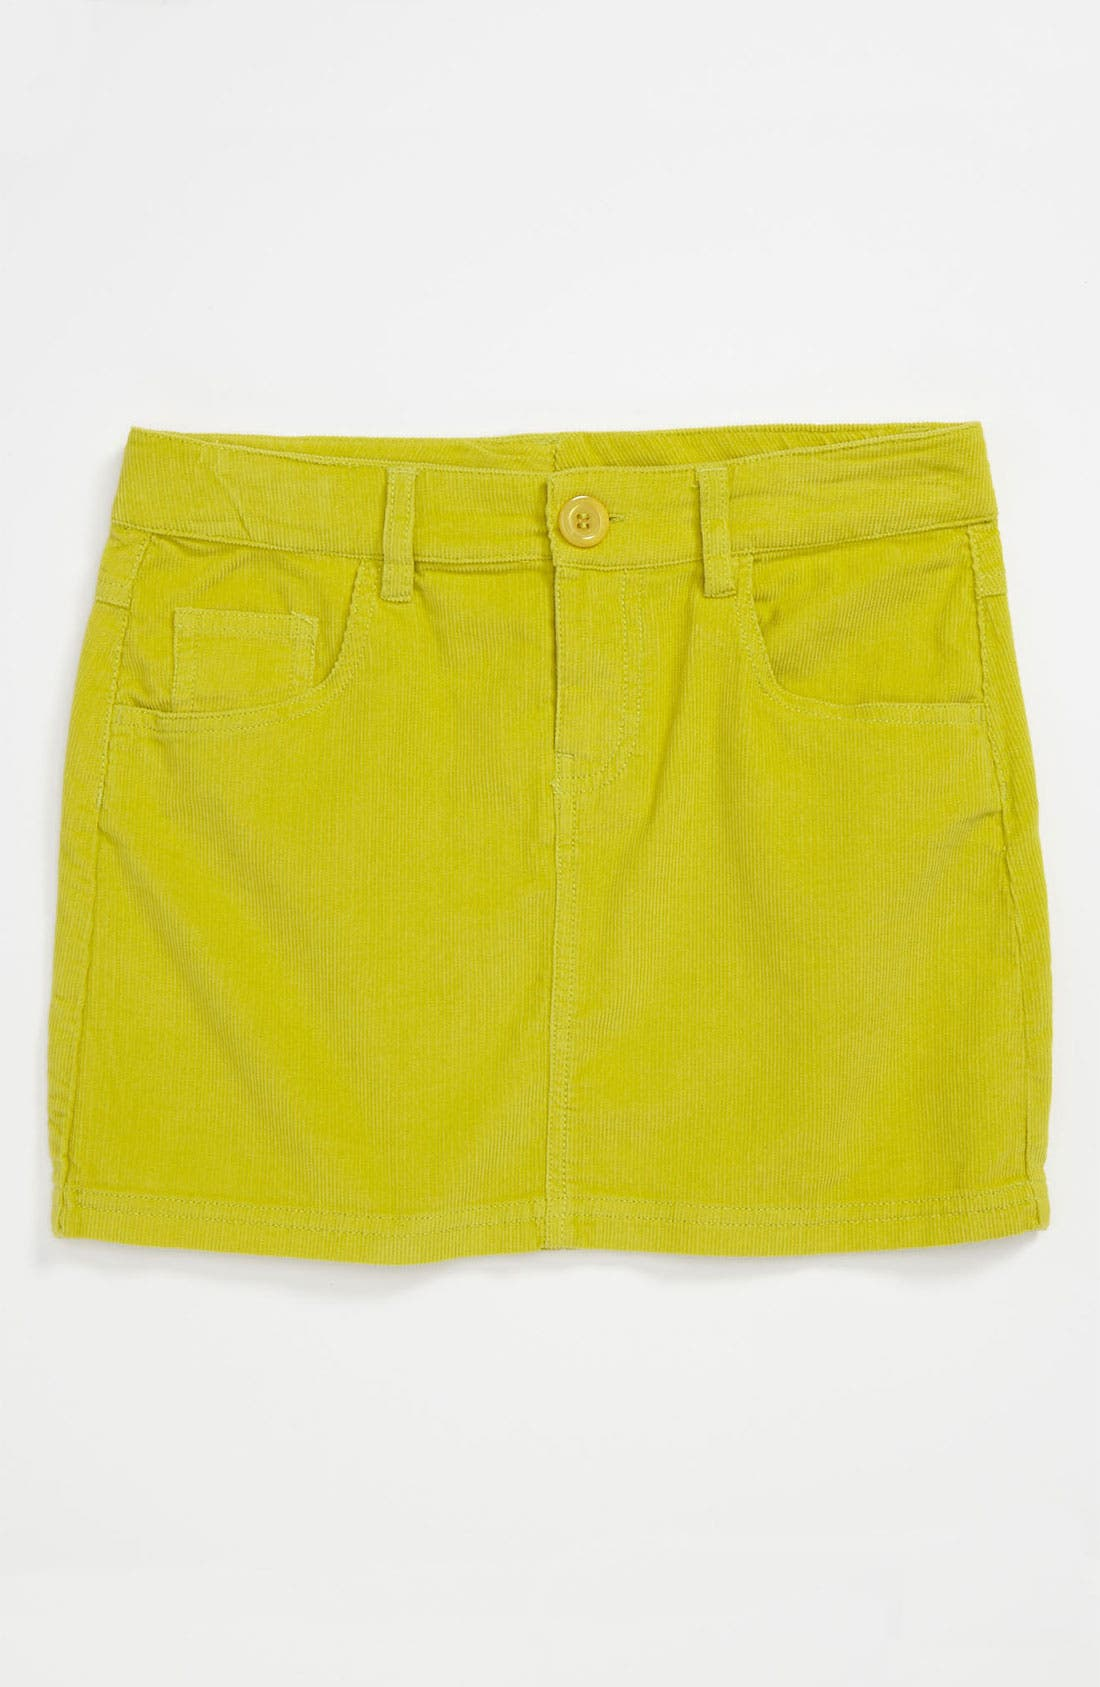 Main Image - United Colors of Benetton Kids Corduroy Skirt (Little Girls & Big Girls)